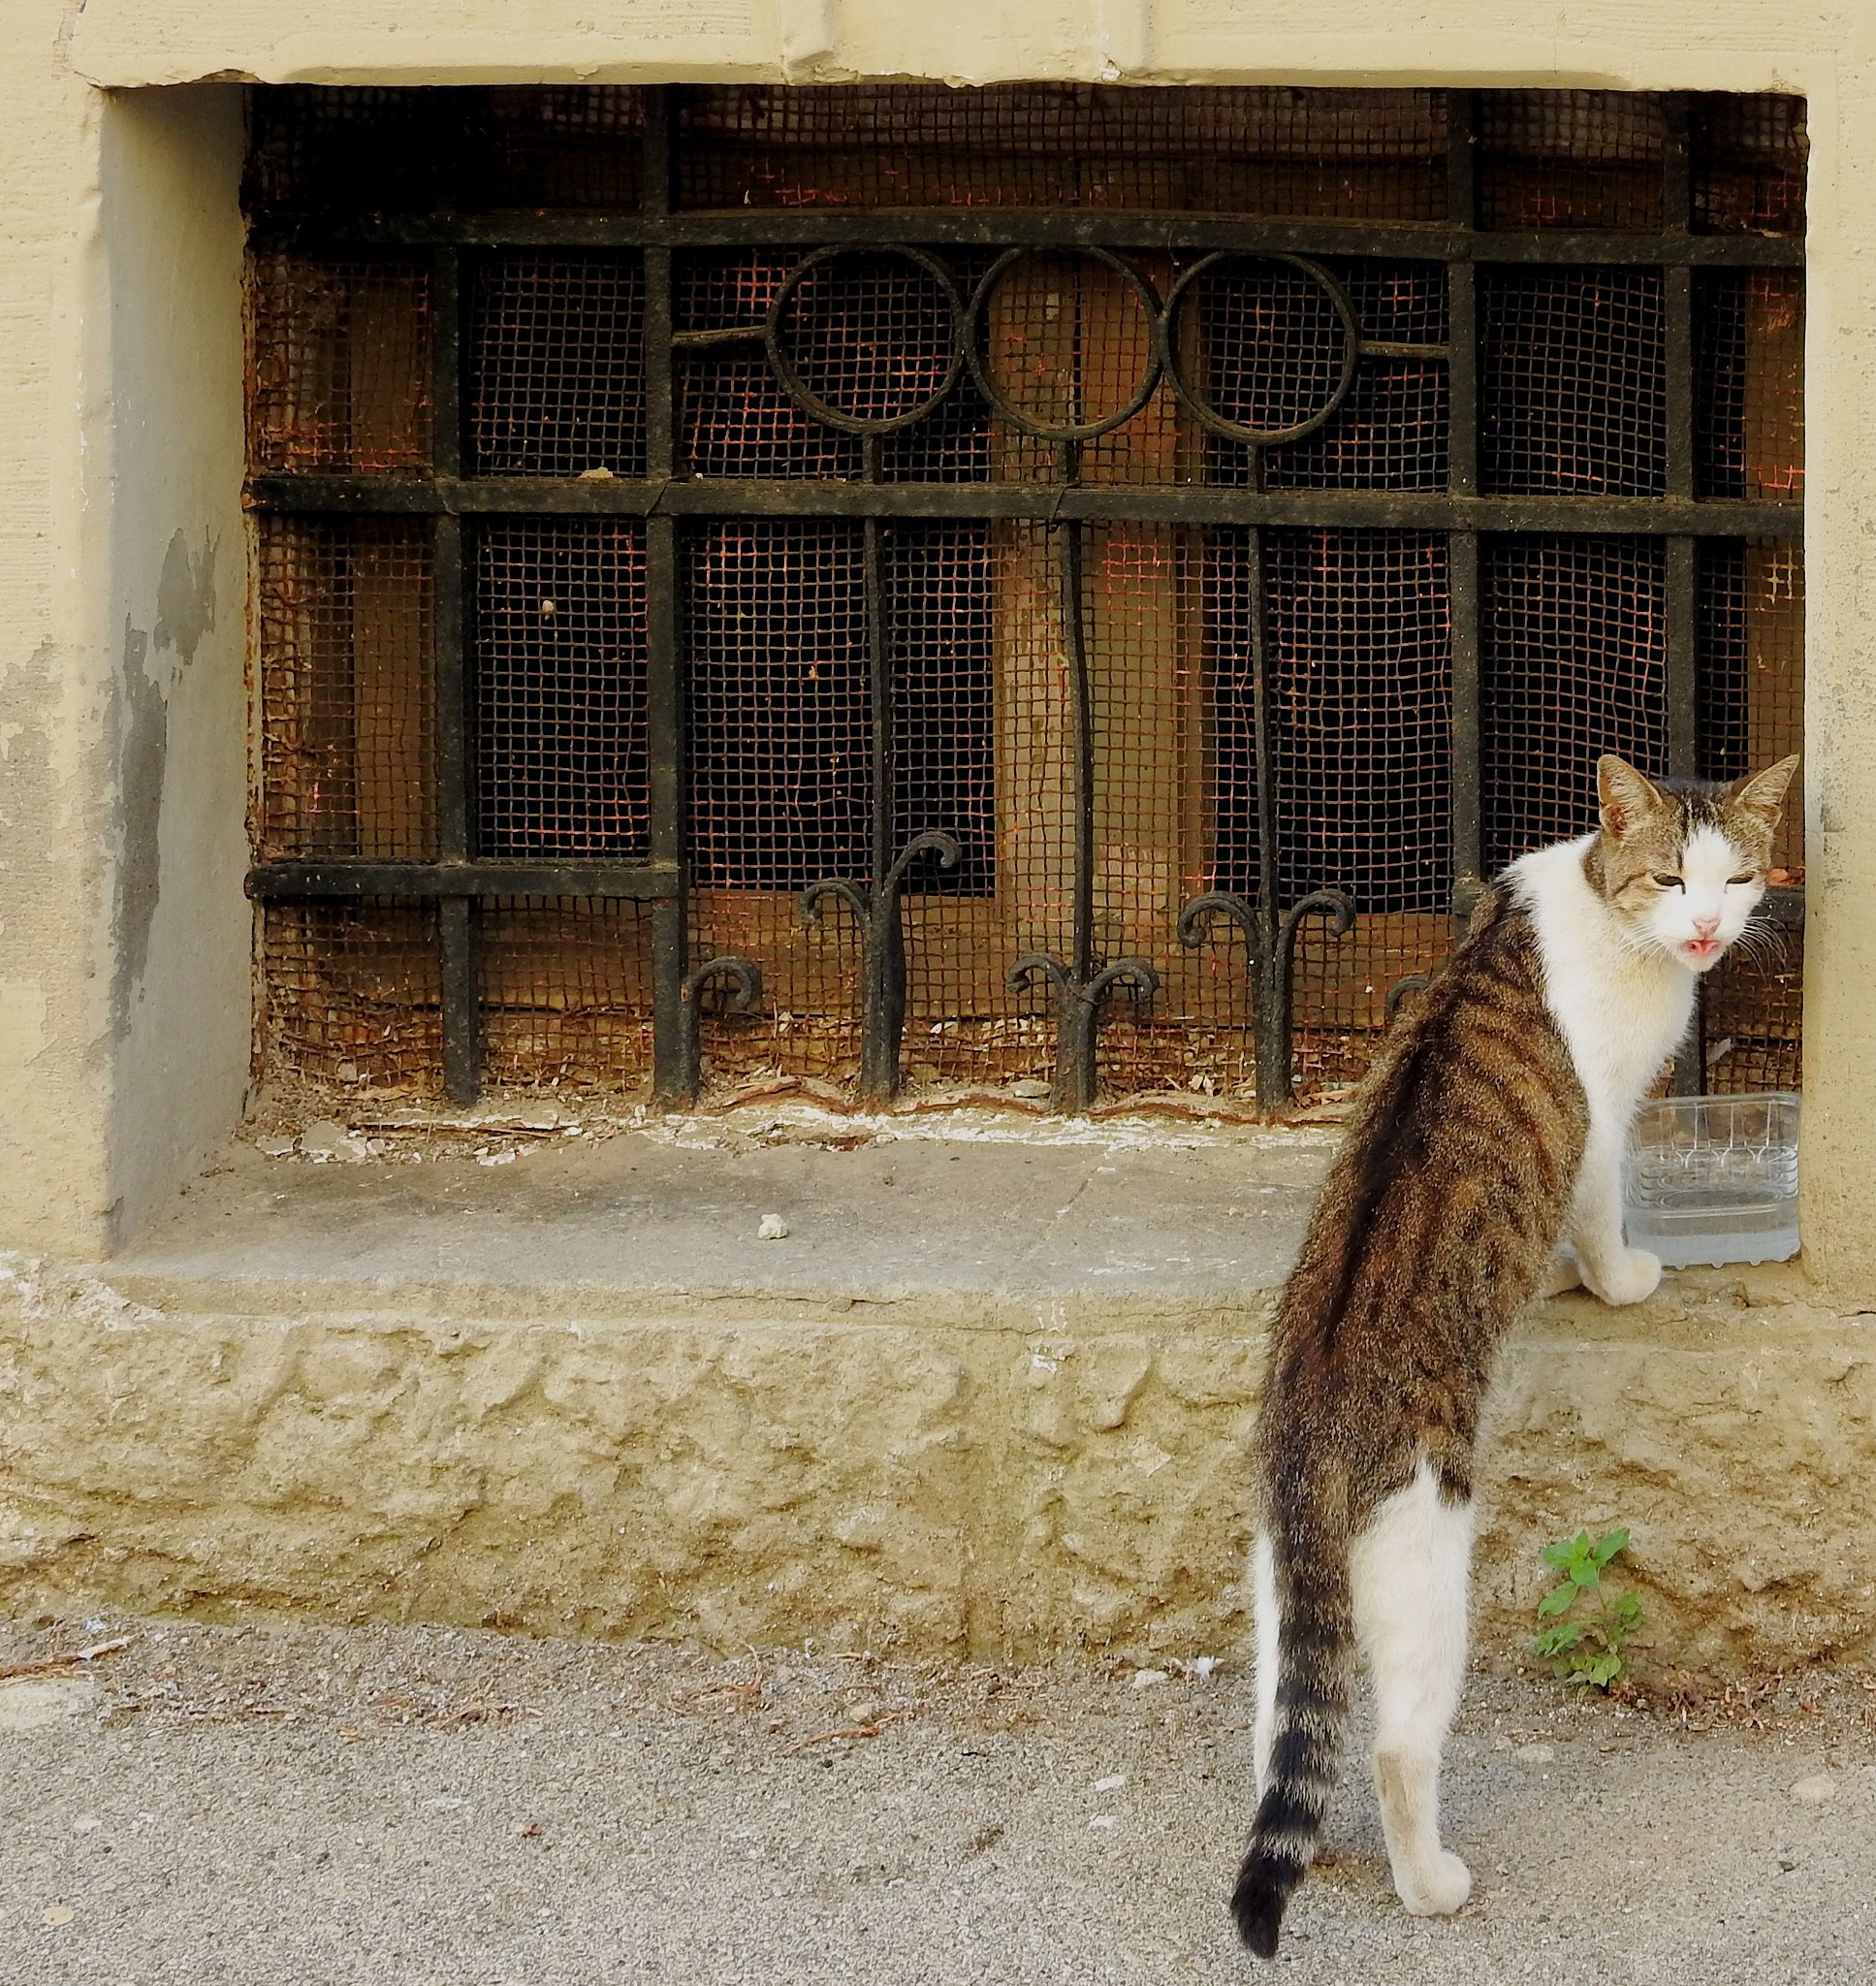 """Naples - Materdei - """"I hate... the Hot Water! Bleahhh!"""" - by Mister Arnauna & Gatto Giuggiolone"""